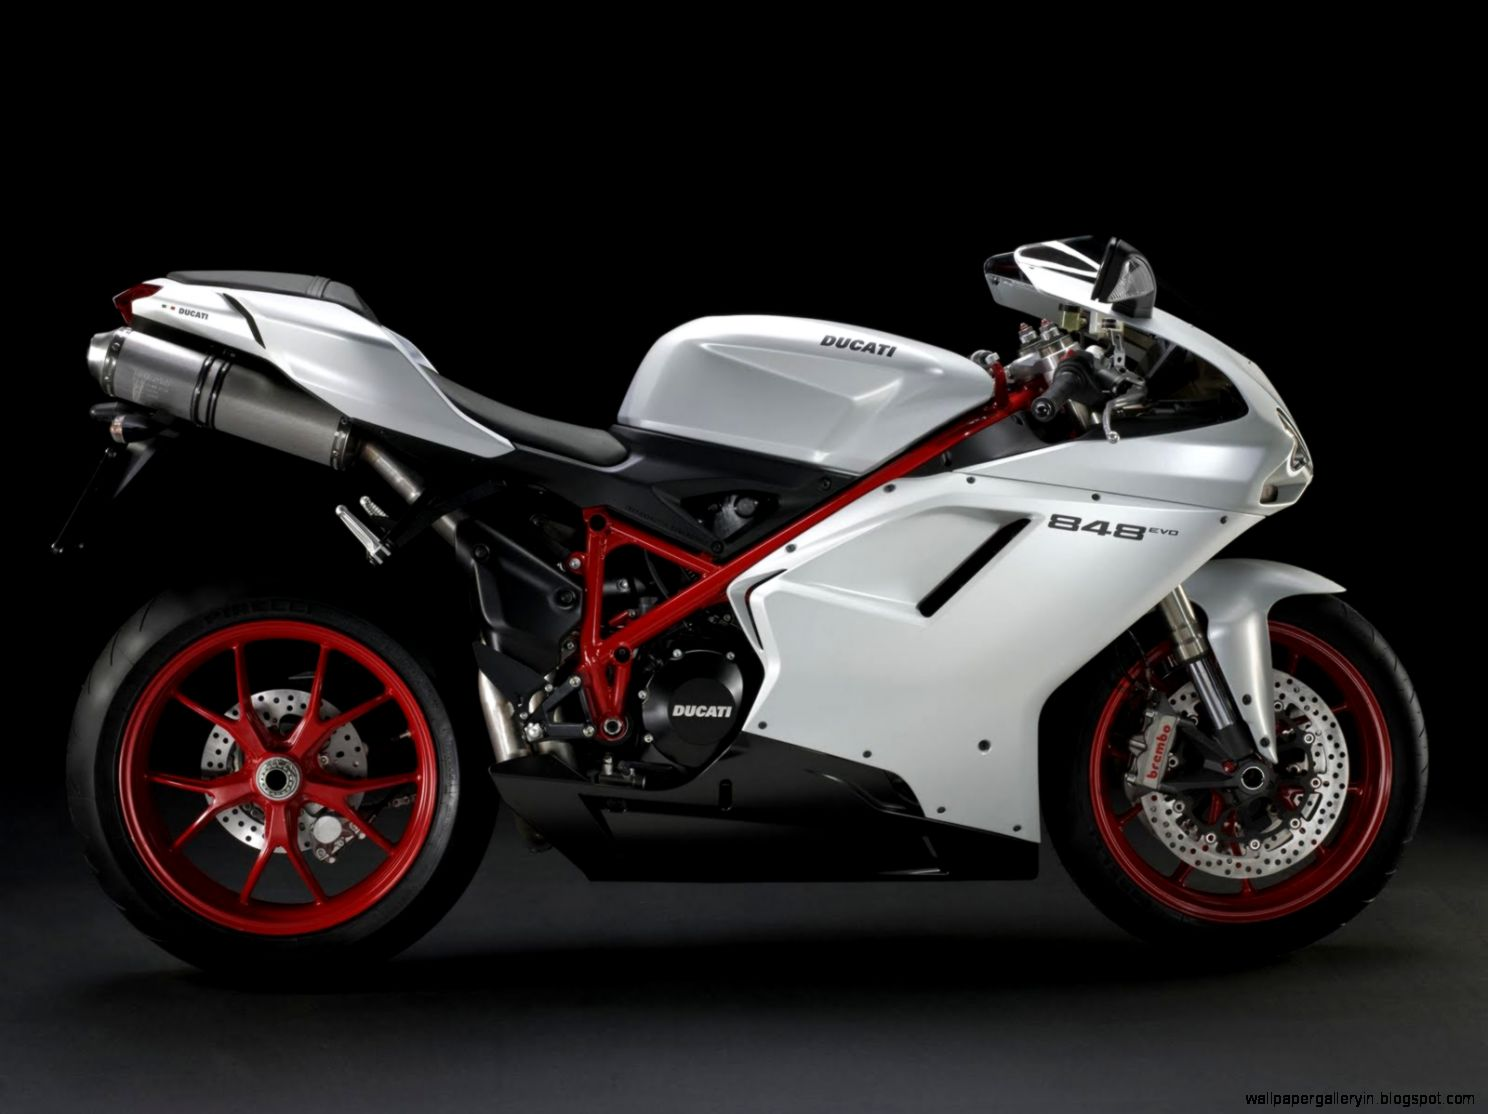 White Color Superbike Ducati 848 Evo Side View 13854 Wallpaper